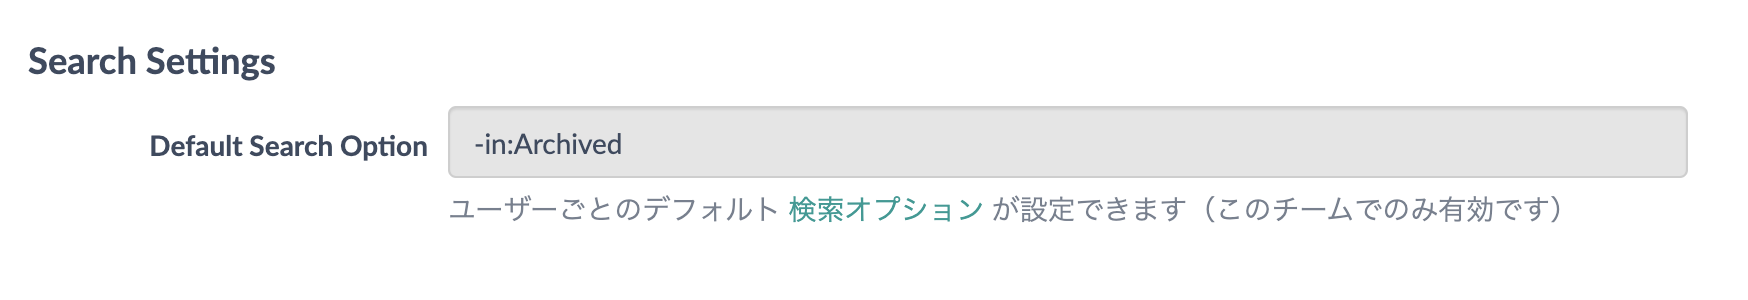 ss 2020-02-19 14.02.39.png (55.1 kB)